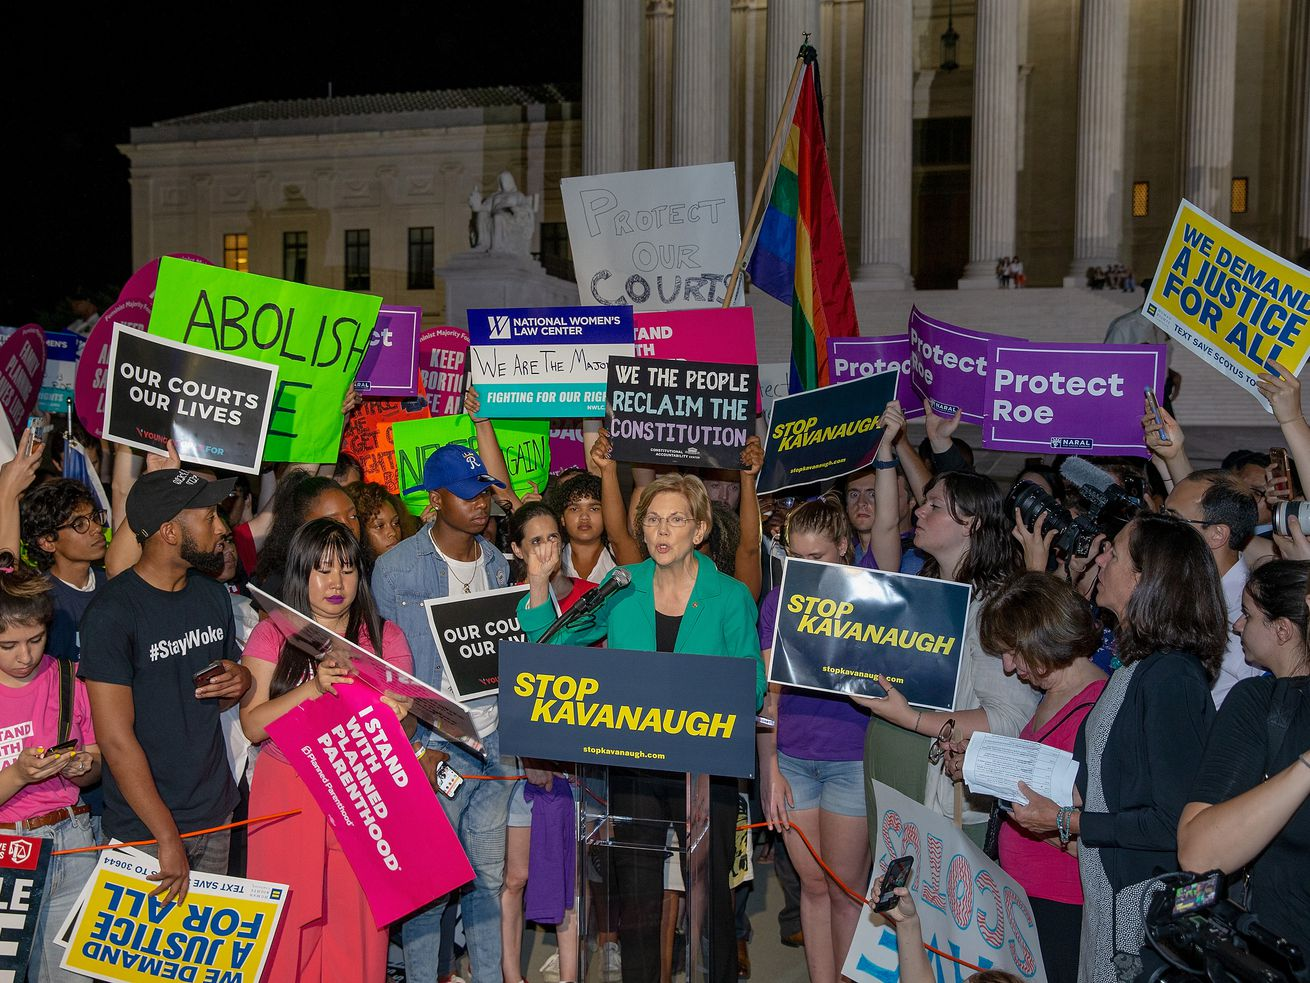 Sen. Elizabeth Warren (D-MA) speaks to activists on the steps of the US Supreme Court following the nomination of Judge Brett Kavanaugh.